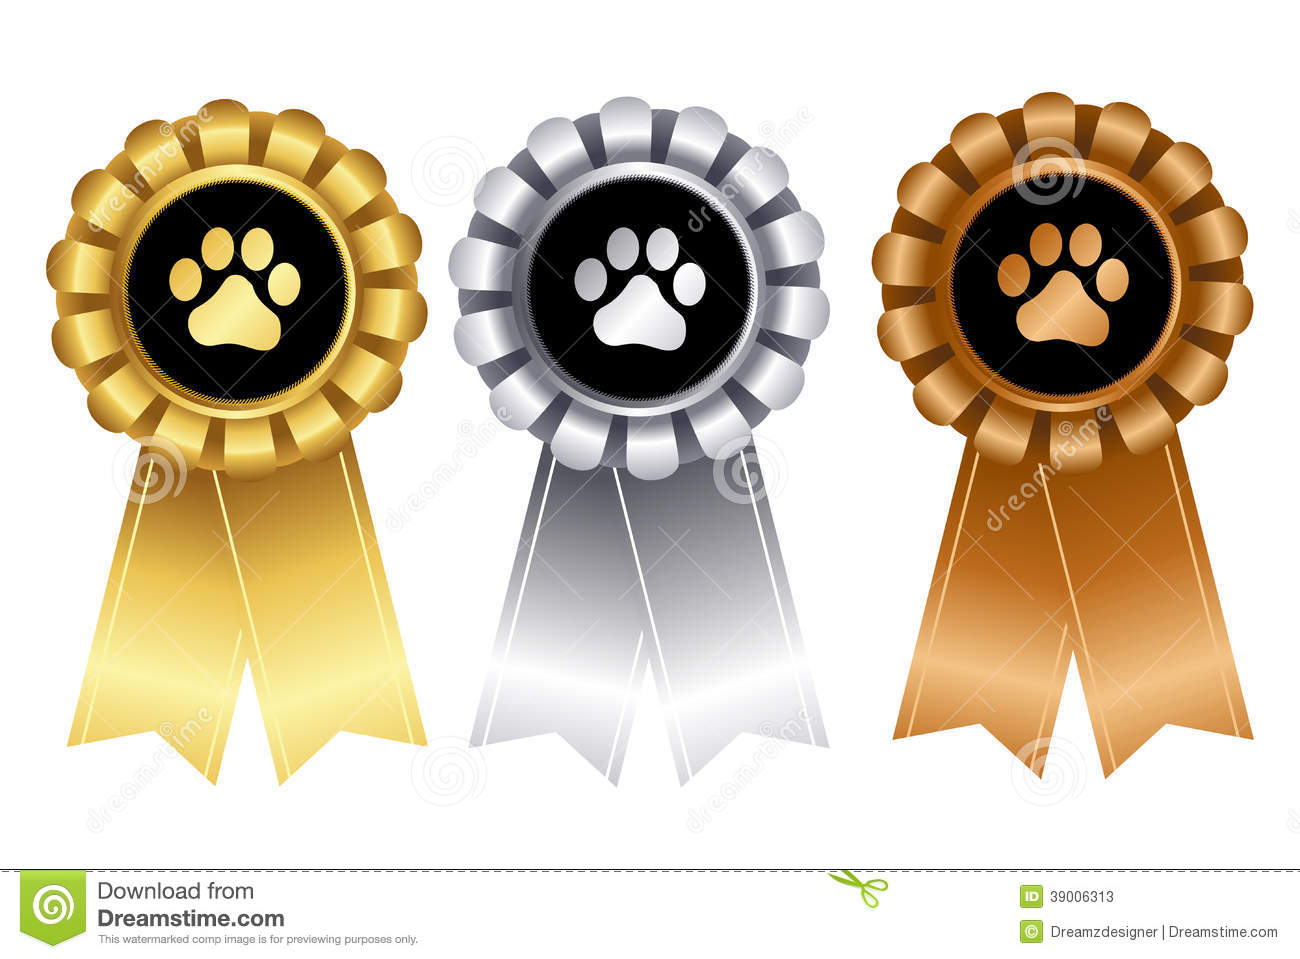 Golden / silver and bronze dog award ribbon rosettes for 1st, 2nd, and ...